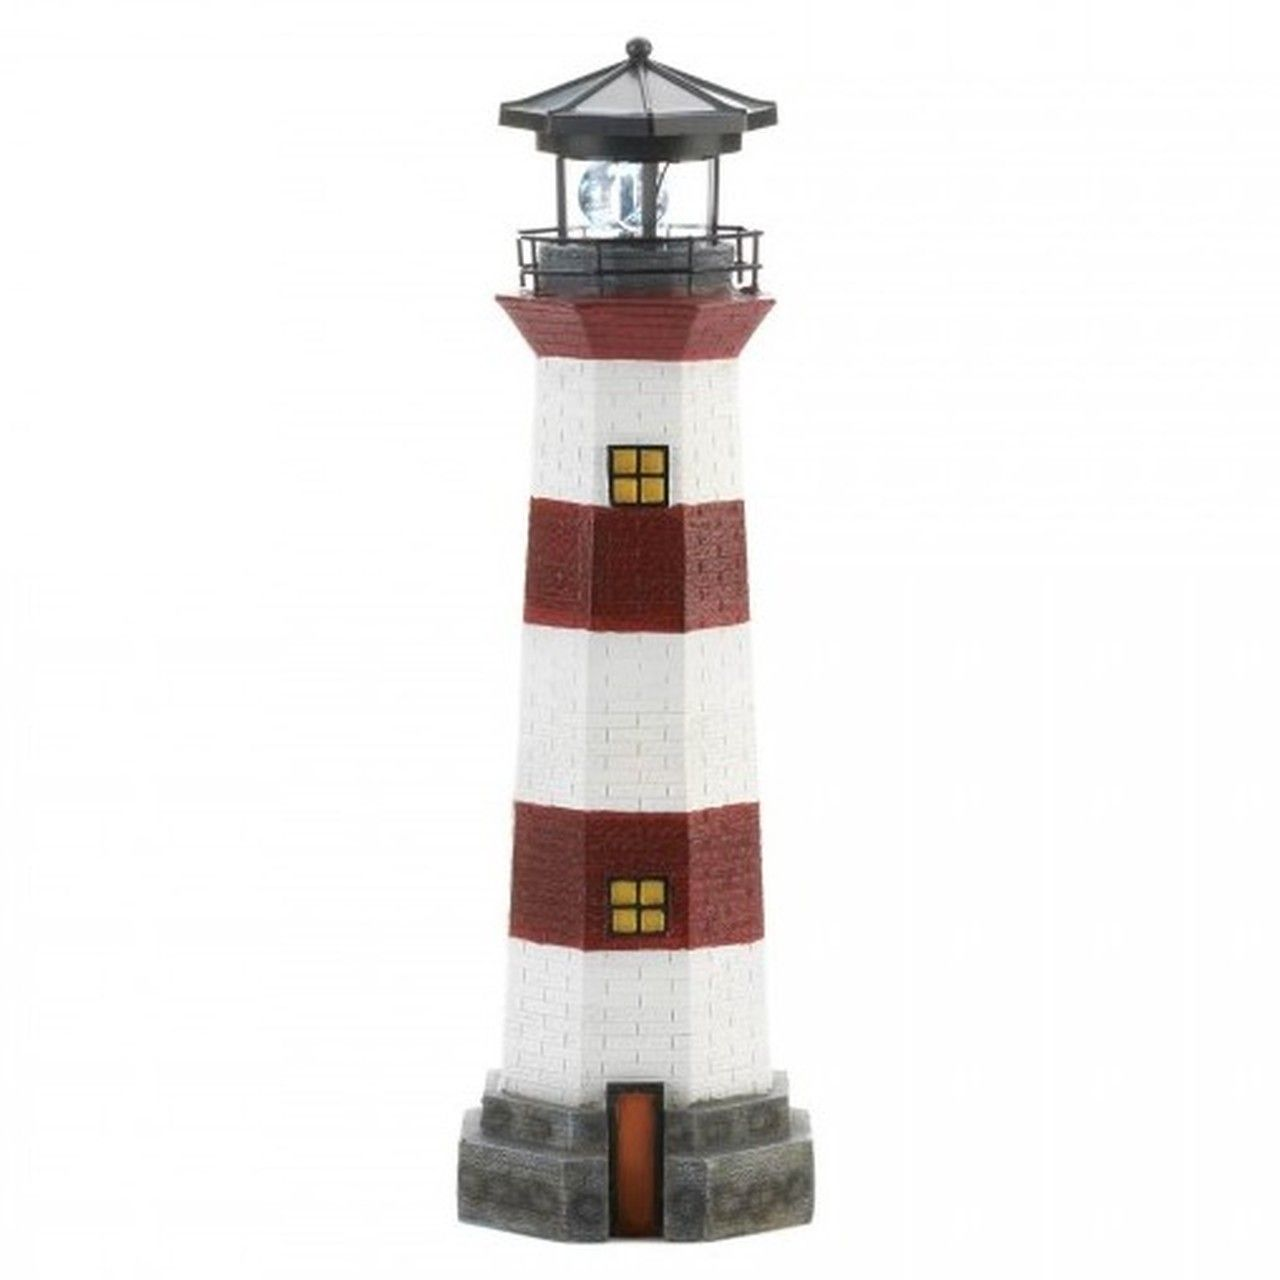 10-Lighthouse Garden Decor with Solar-Powered Spinning